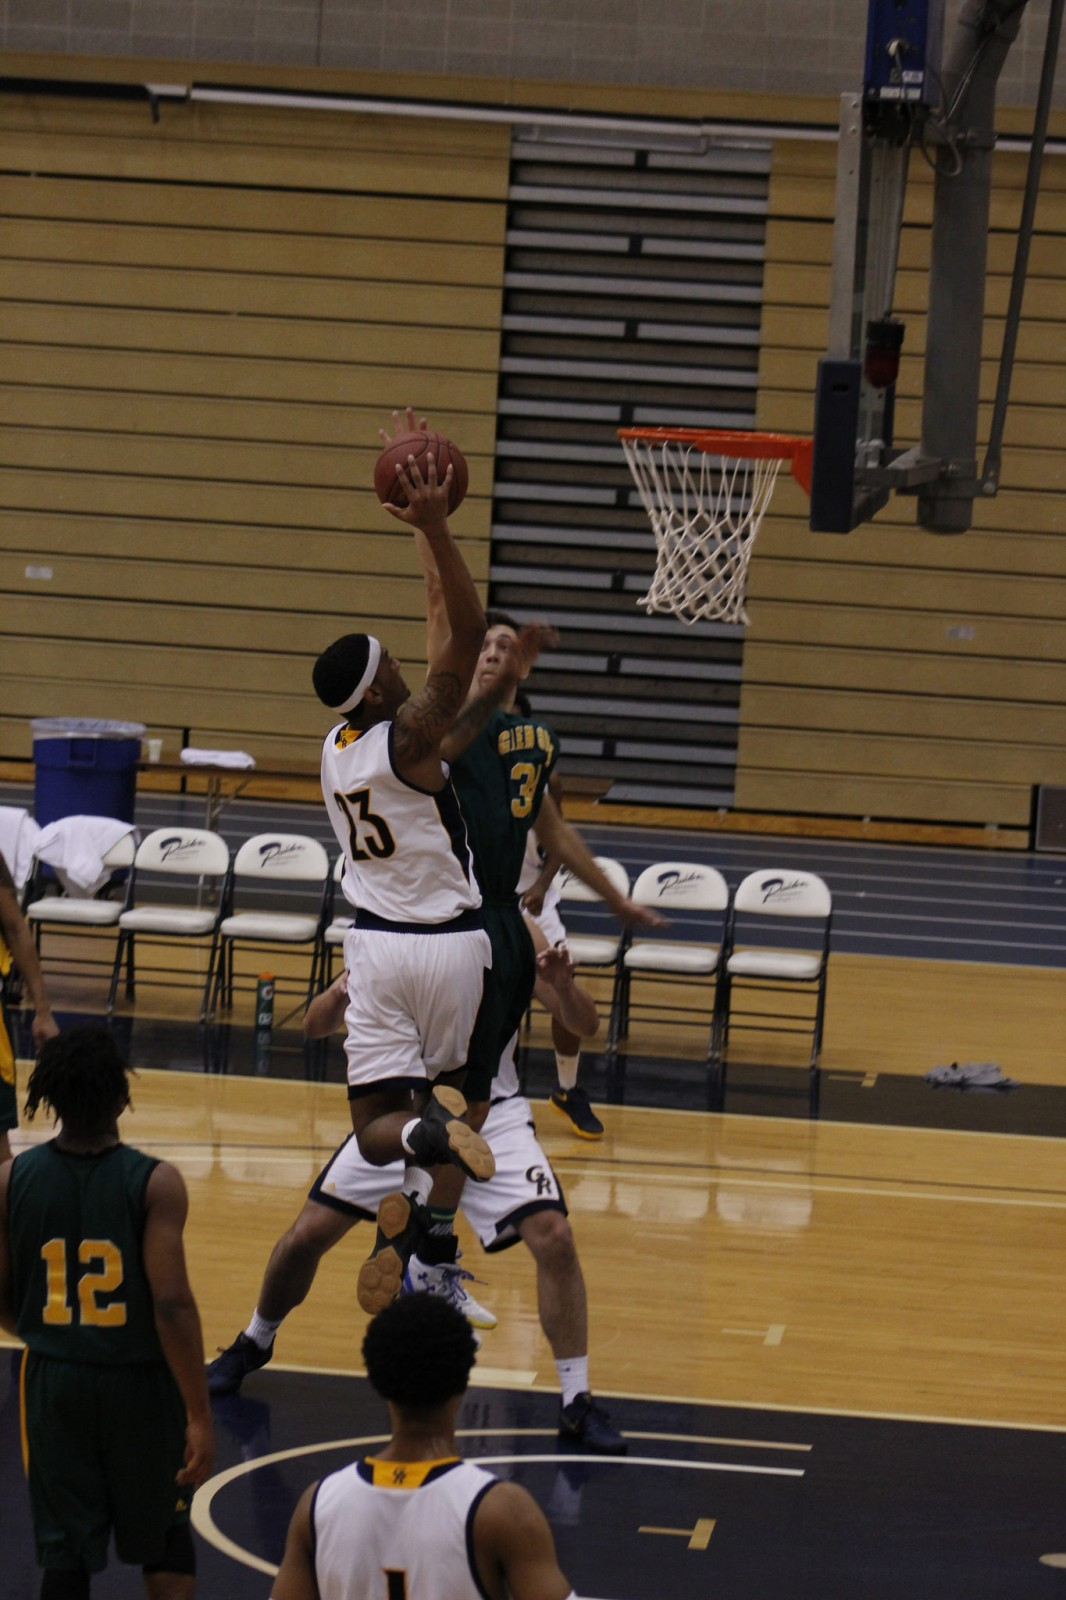 Freshman Forward, #23, Corey jones goes in for the contested layup against Glen Oaks CC.